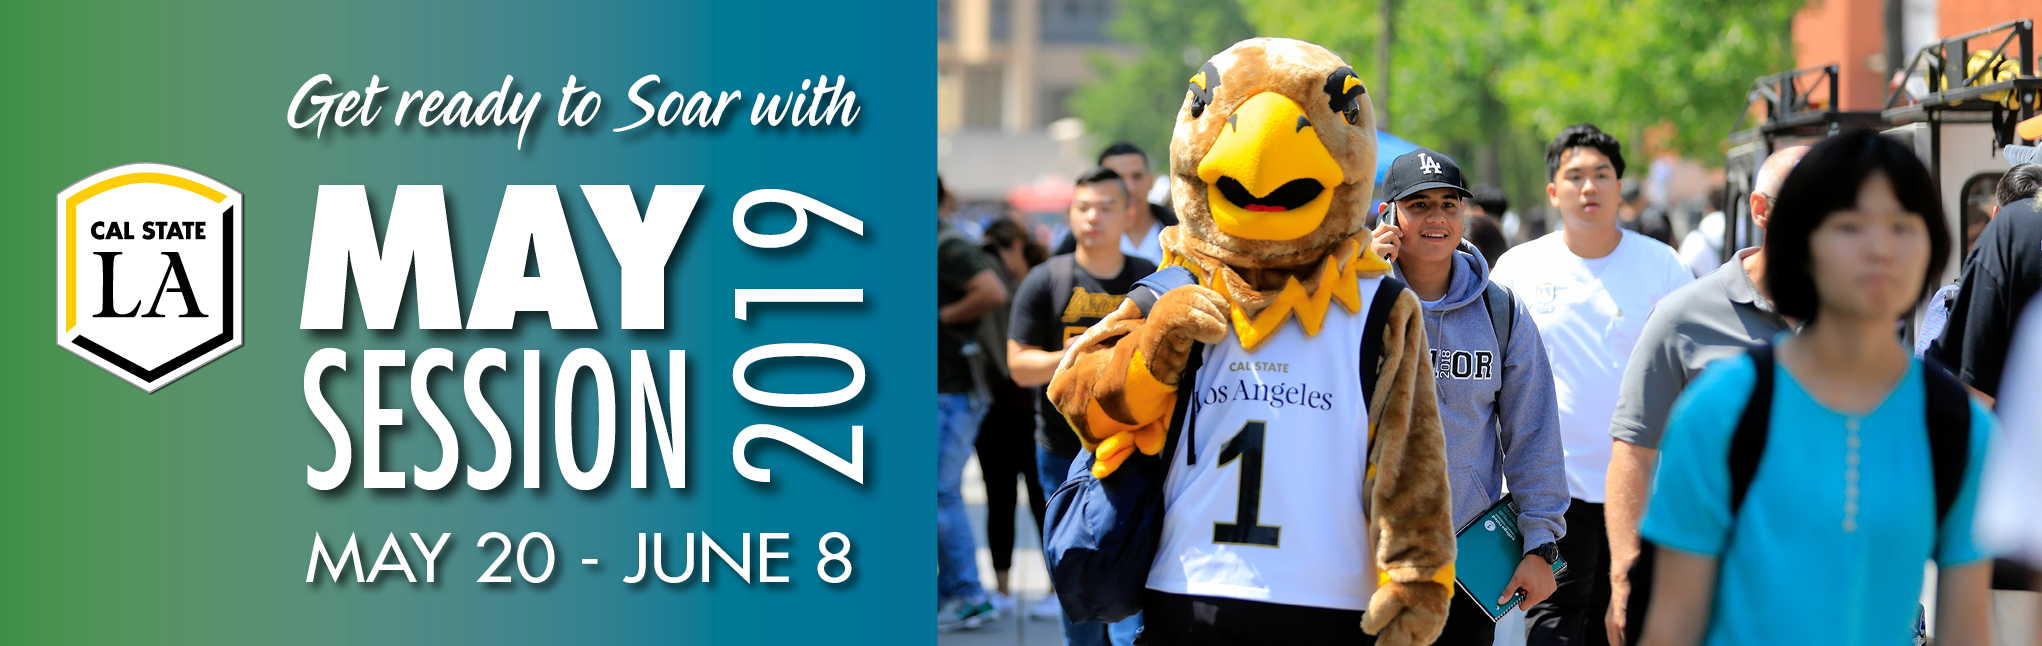 May Session 2019 with Eddie the Eagle walking through campus; links to May Session webpage